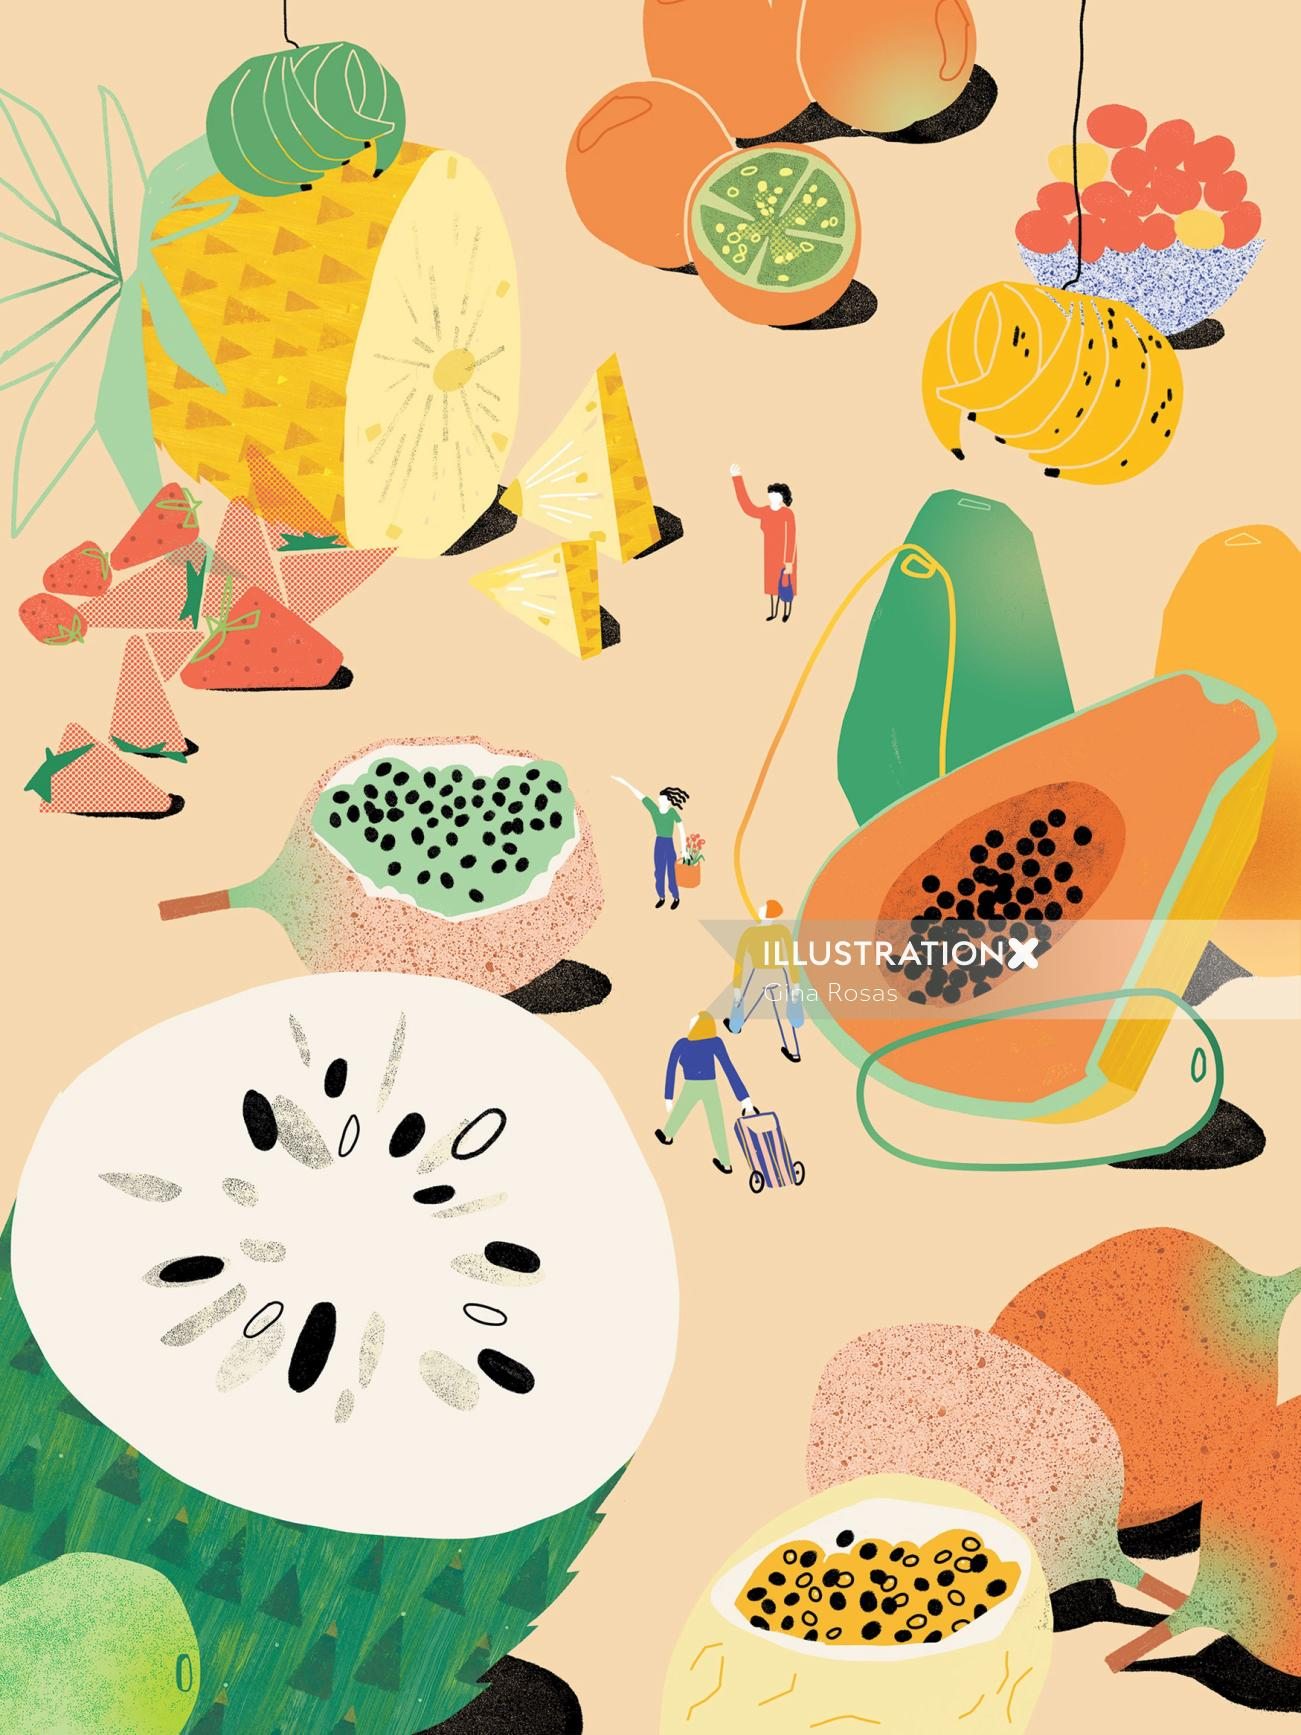 Editorial art of fruits by Gina Rosas for Heimat exhibition